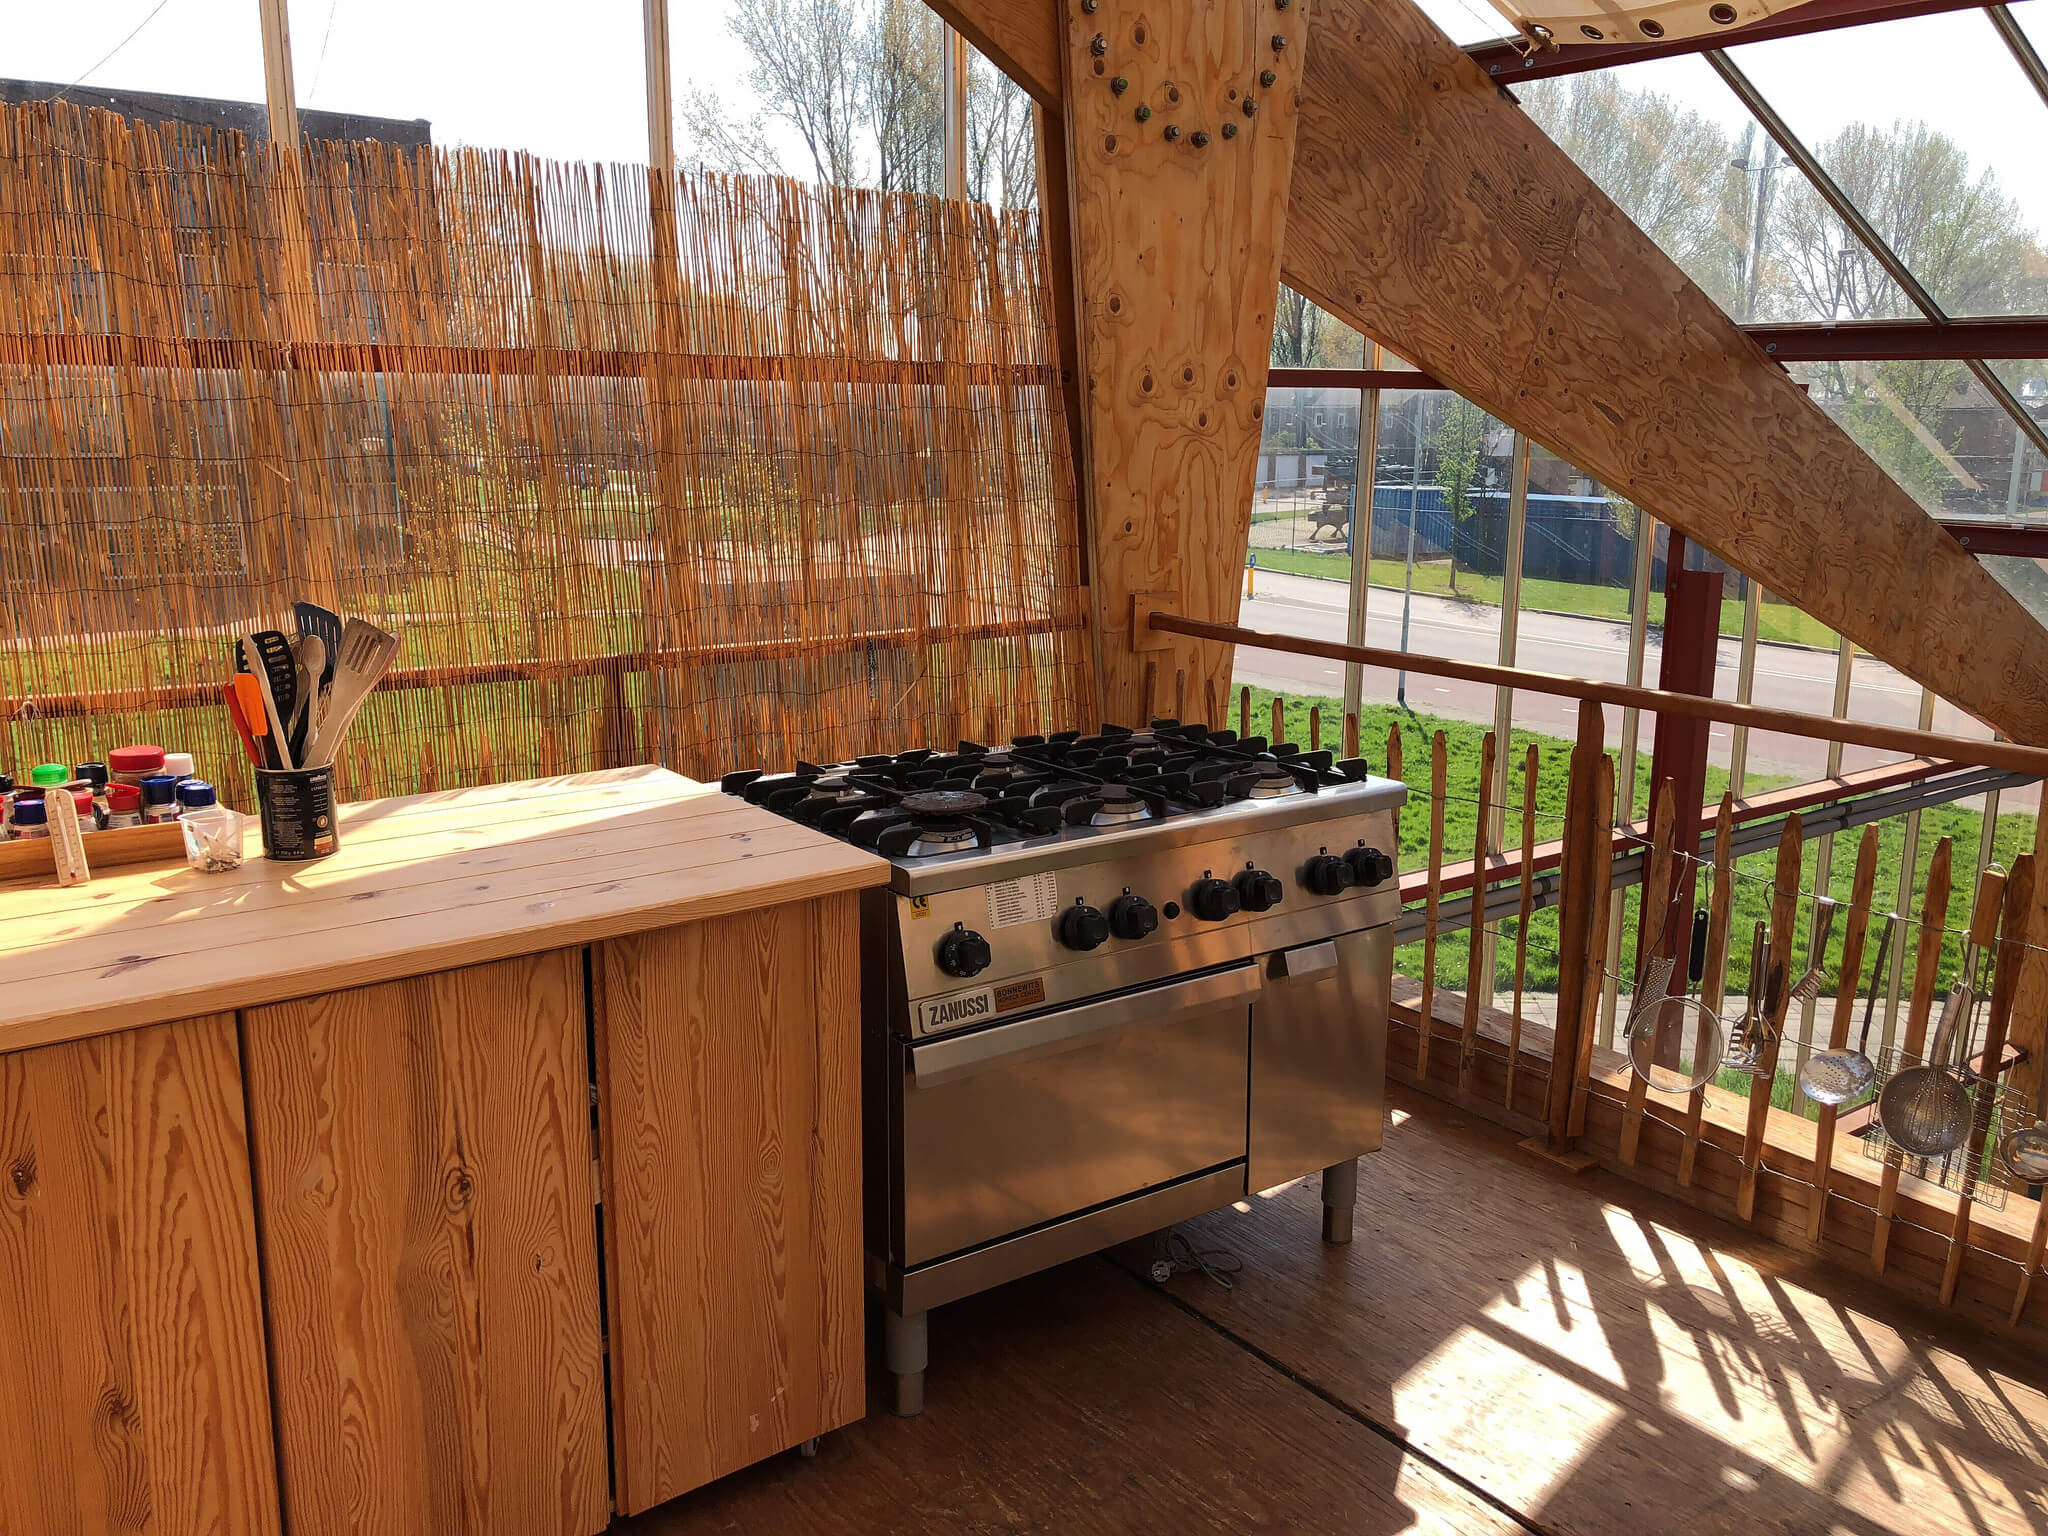 Salvage Kitchen Cabinets Top 7 Tips For Designing The Perfect Outdoor Kitchen Kukun